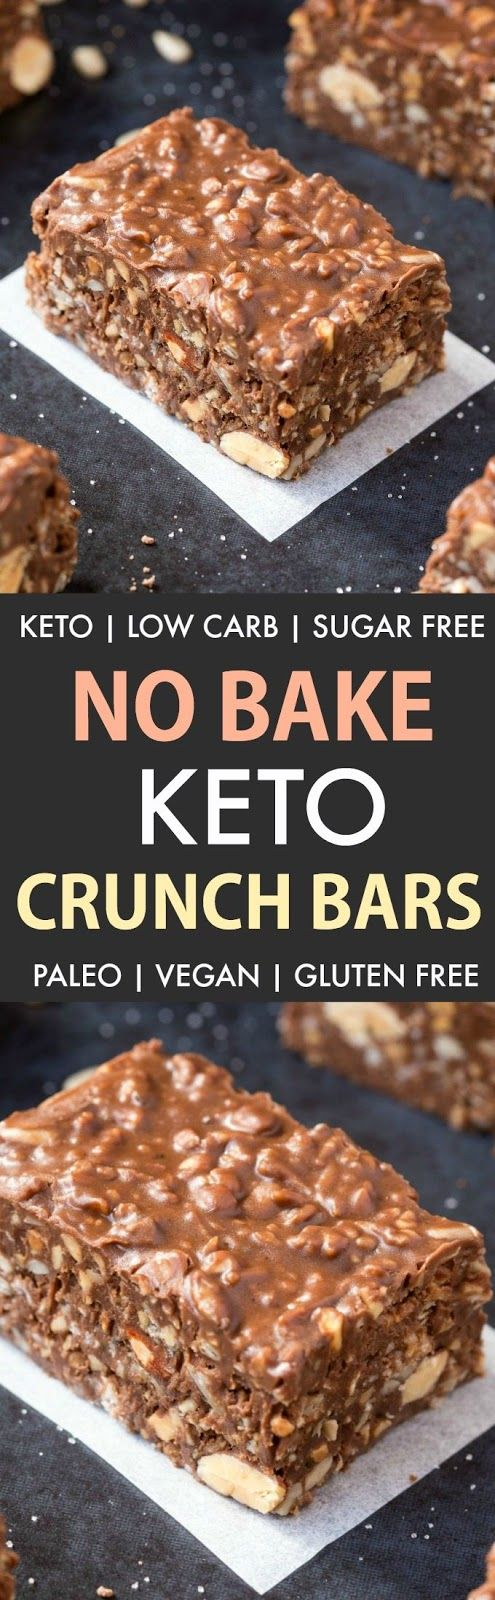 Chocolate Crunch Bars are a quick, easy and foolproof recipe which takes minutes to whip up Now they have a ketogenic and low carb makeover! A chocolate base loaded with nuts, seeds, and shredded co is part of Healthy candy -